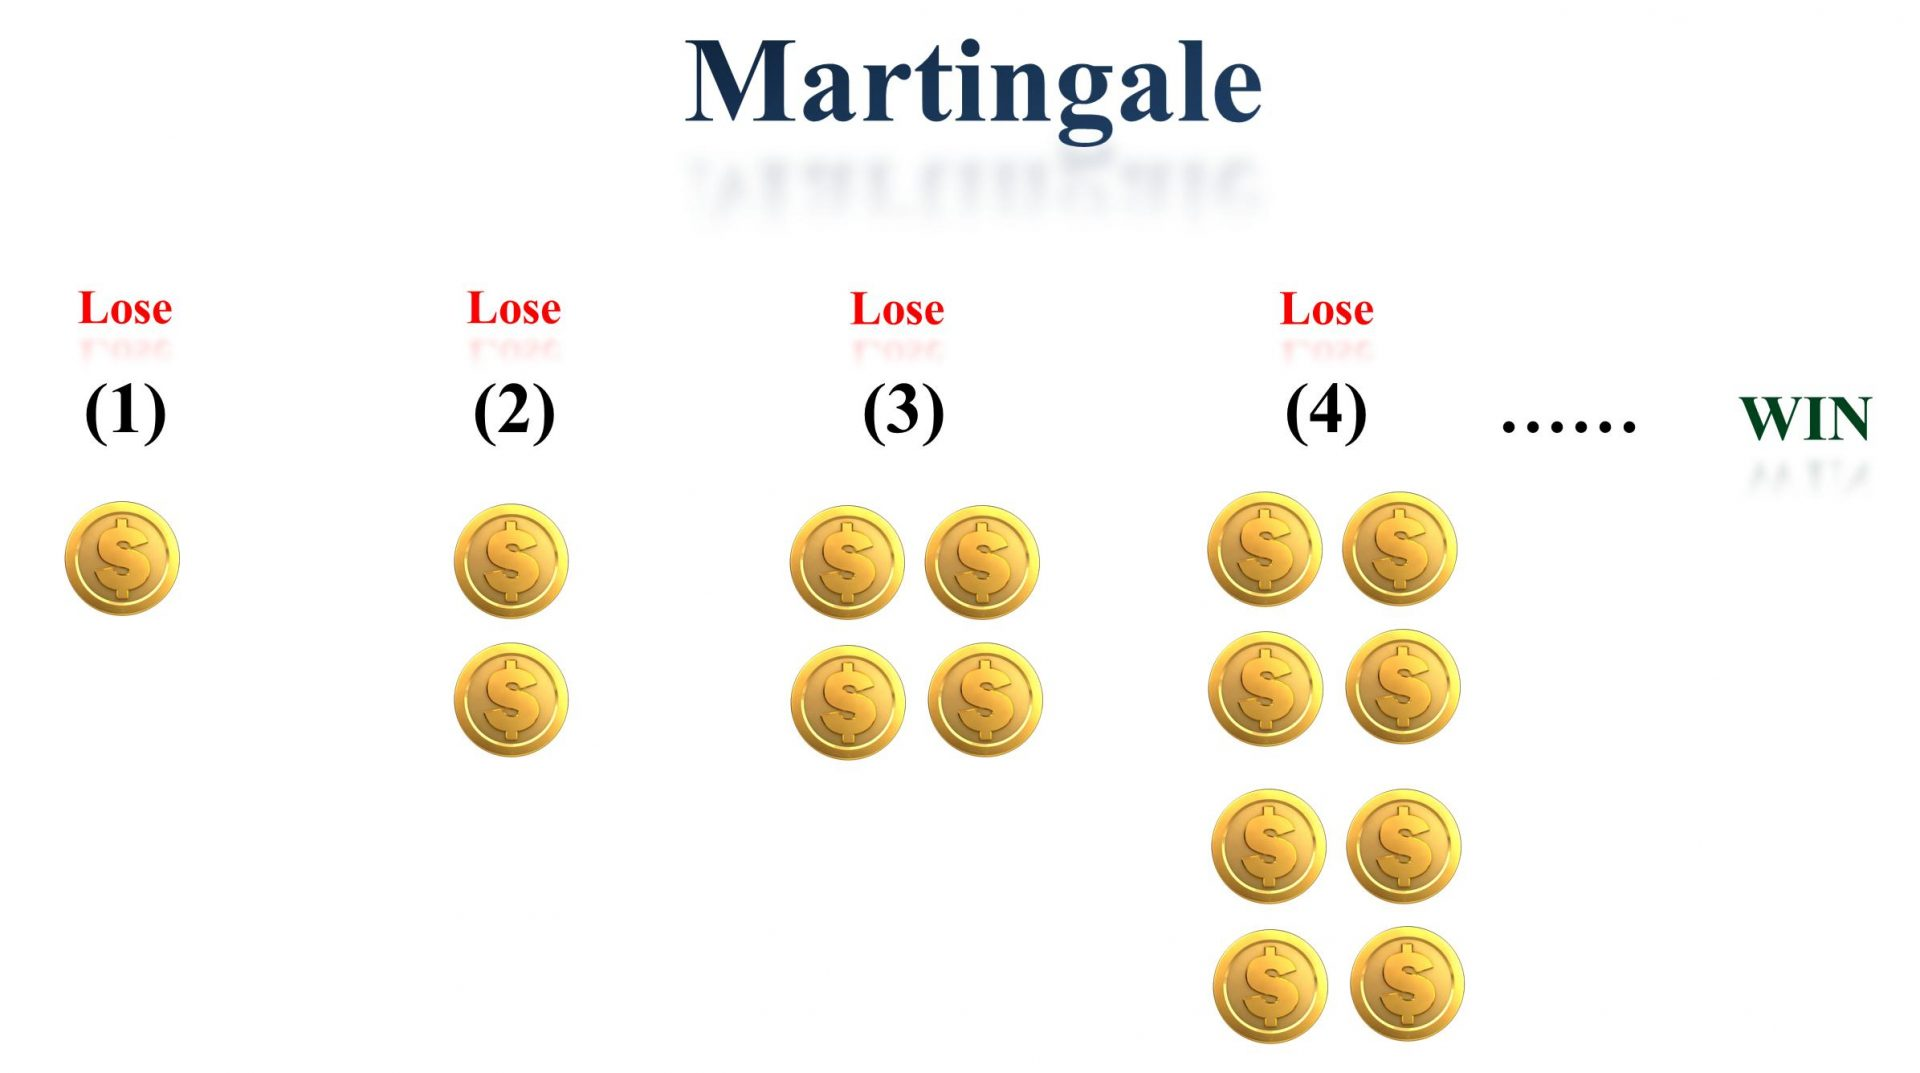 What is Martingale method?